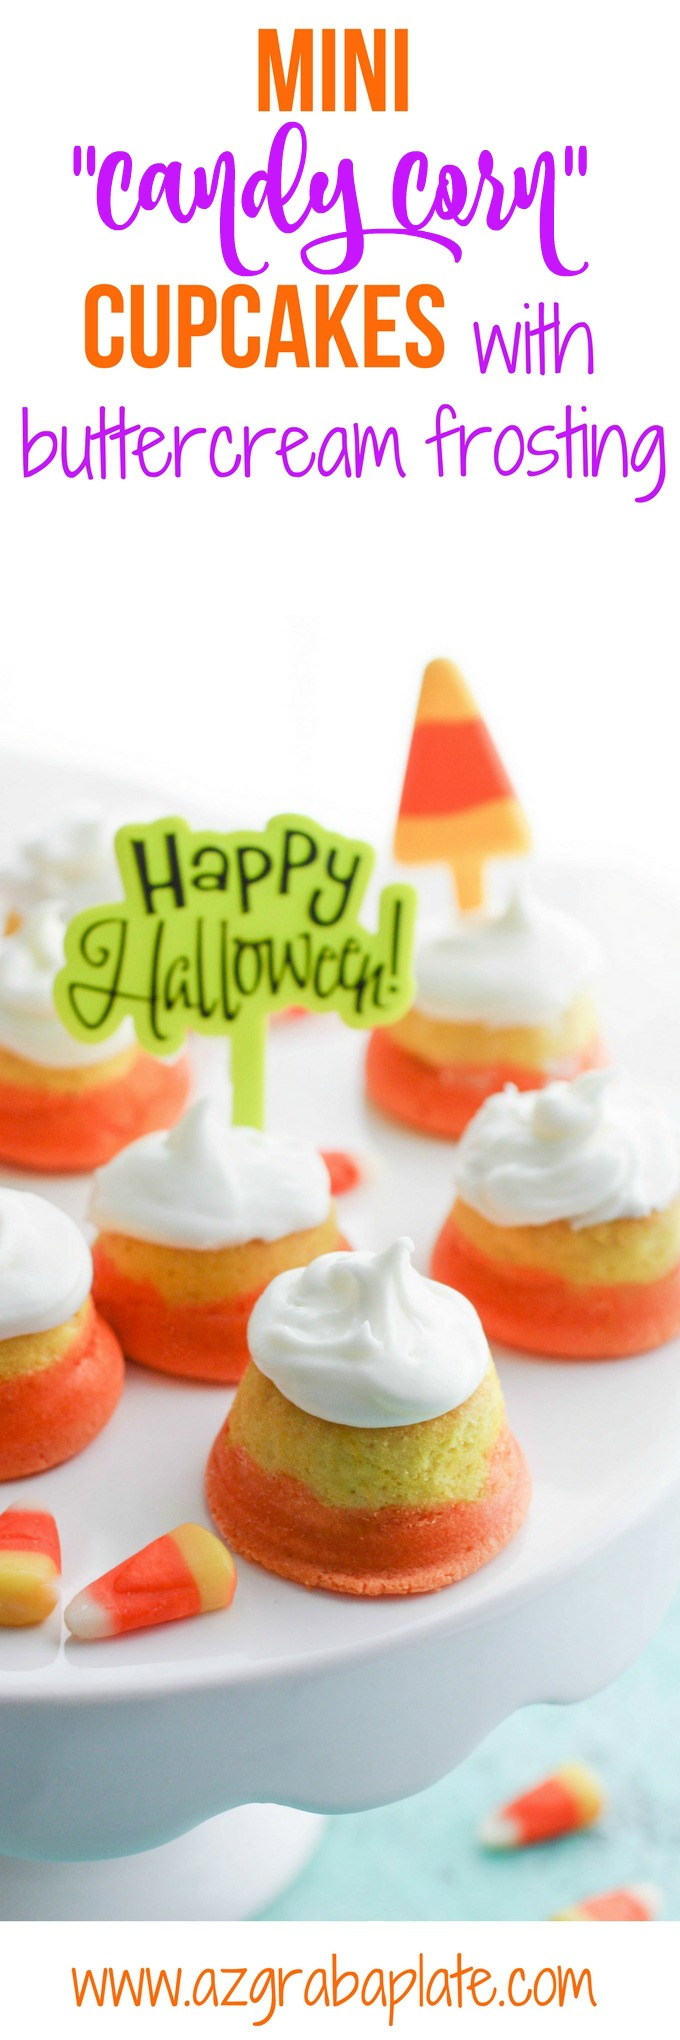 "Mini ""Candy Corn"" Cupcakes with Buttercream Frosting make a fun Halloween dessert. You'll love the looks of these cupcakes, and they taste amazing!"